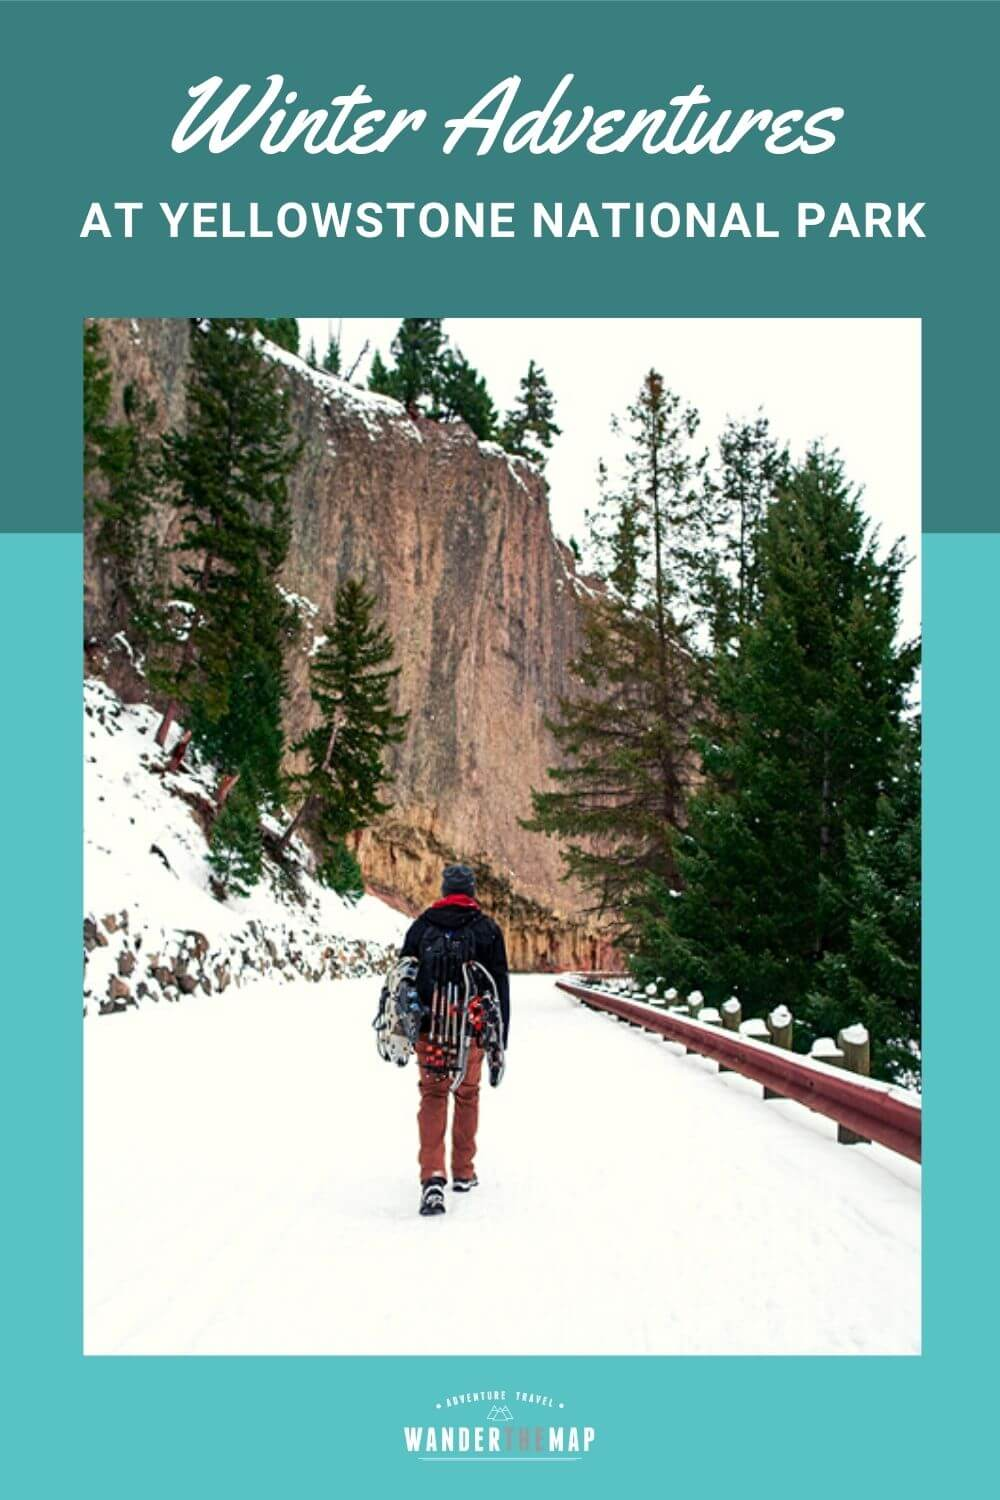 DIY Winter Adventures in Yellowstone National Park